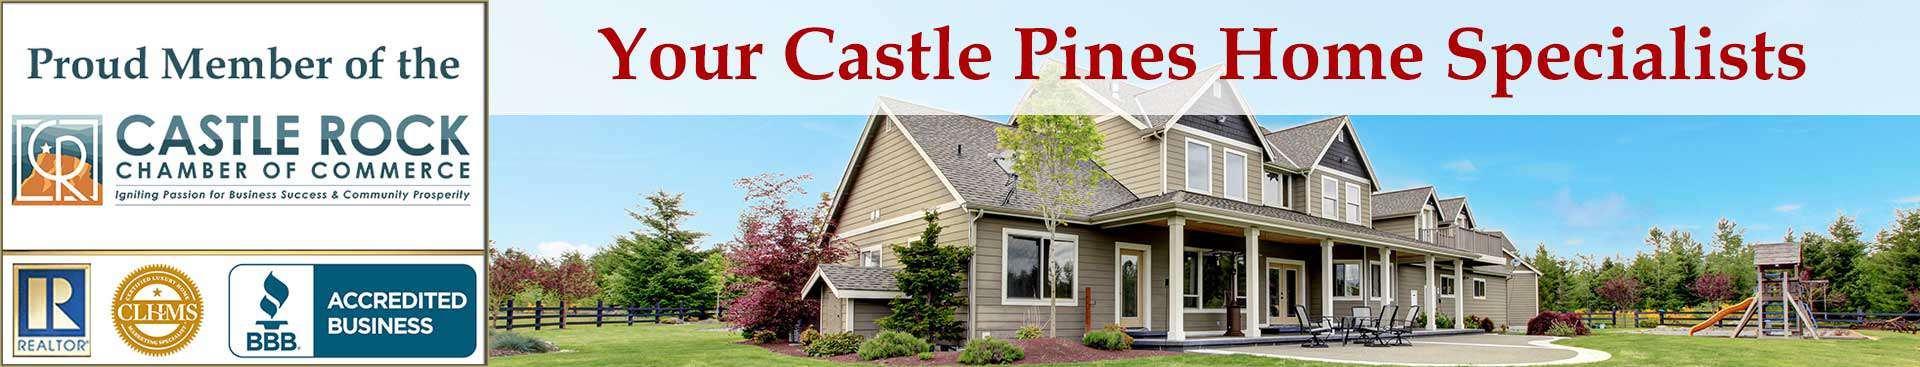 Castle Pines CO Organizational Banner